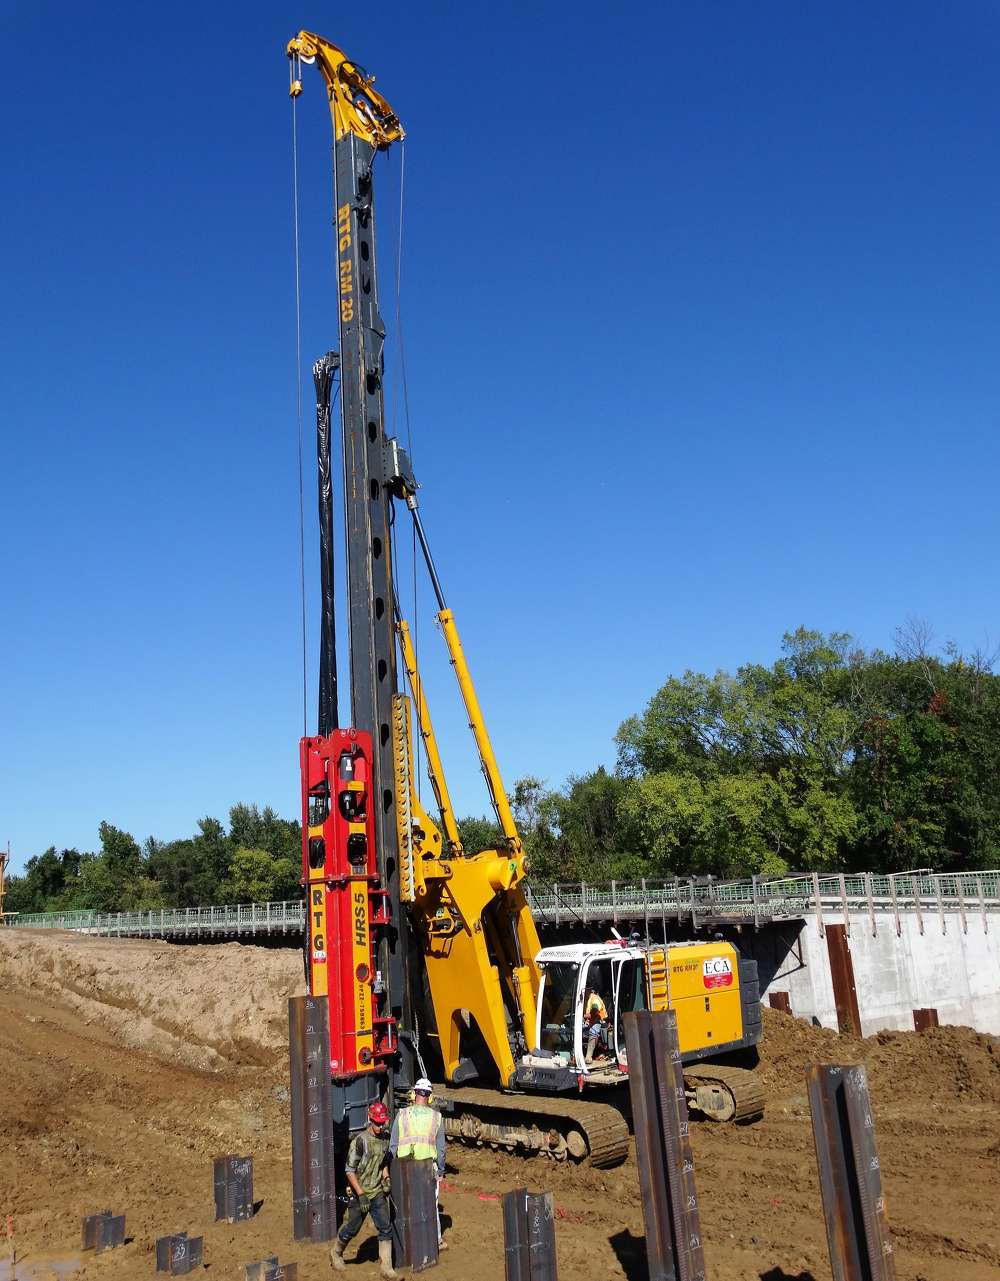 PKF drove 14 x 89 H-piles to dense bedrock at 12 to 80 ft. (3.6 to 24.3 m), although 35 ft. (10.6 m) was the average. Piles were capped with a heavy-duty steel tip for added penetration.